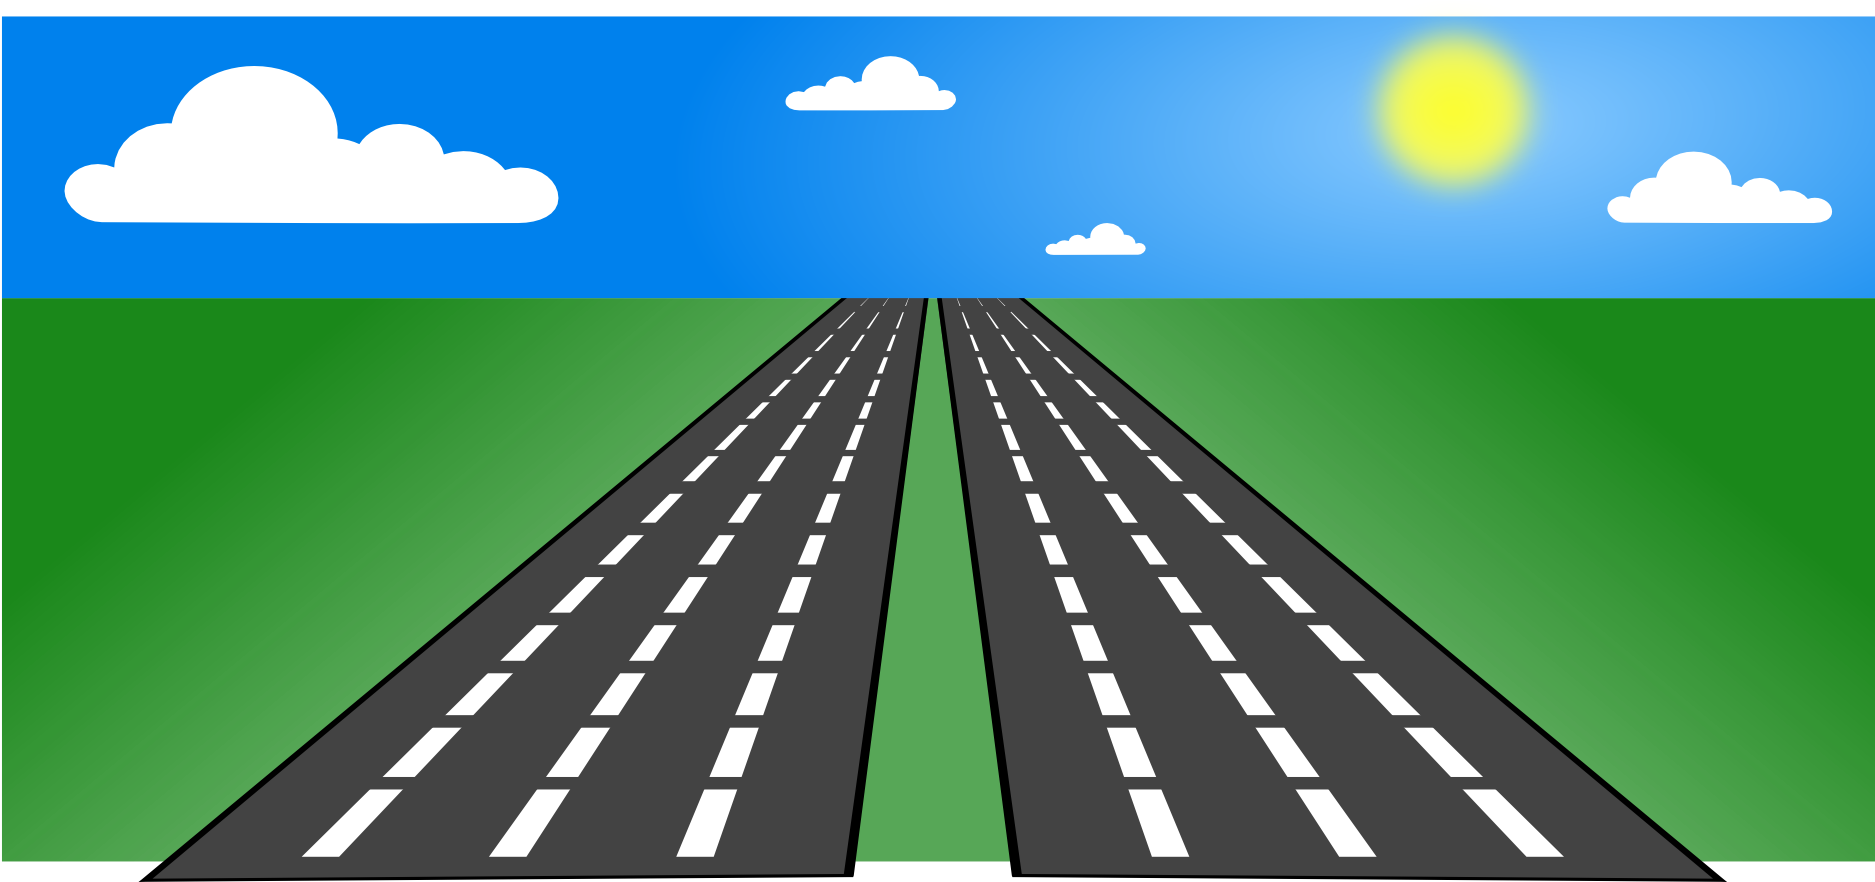 Clip art transparent cartoon. Clipart road wide road